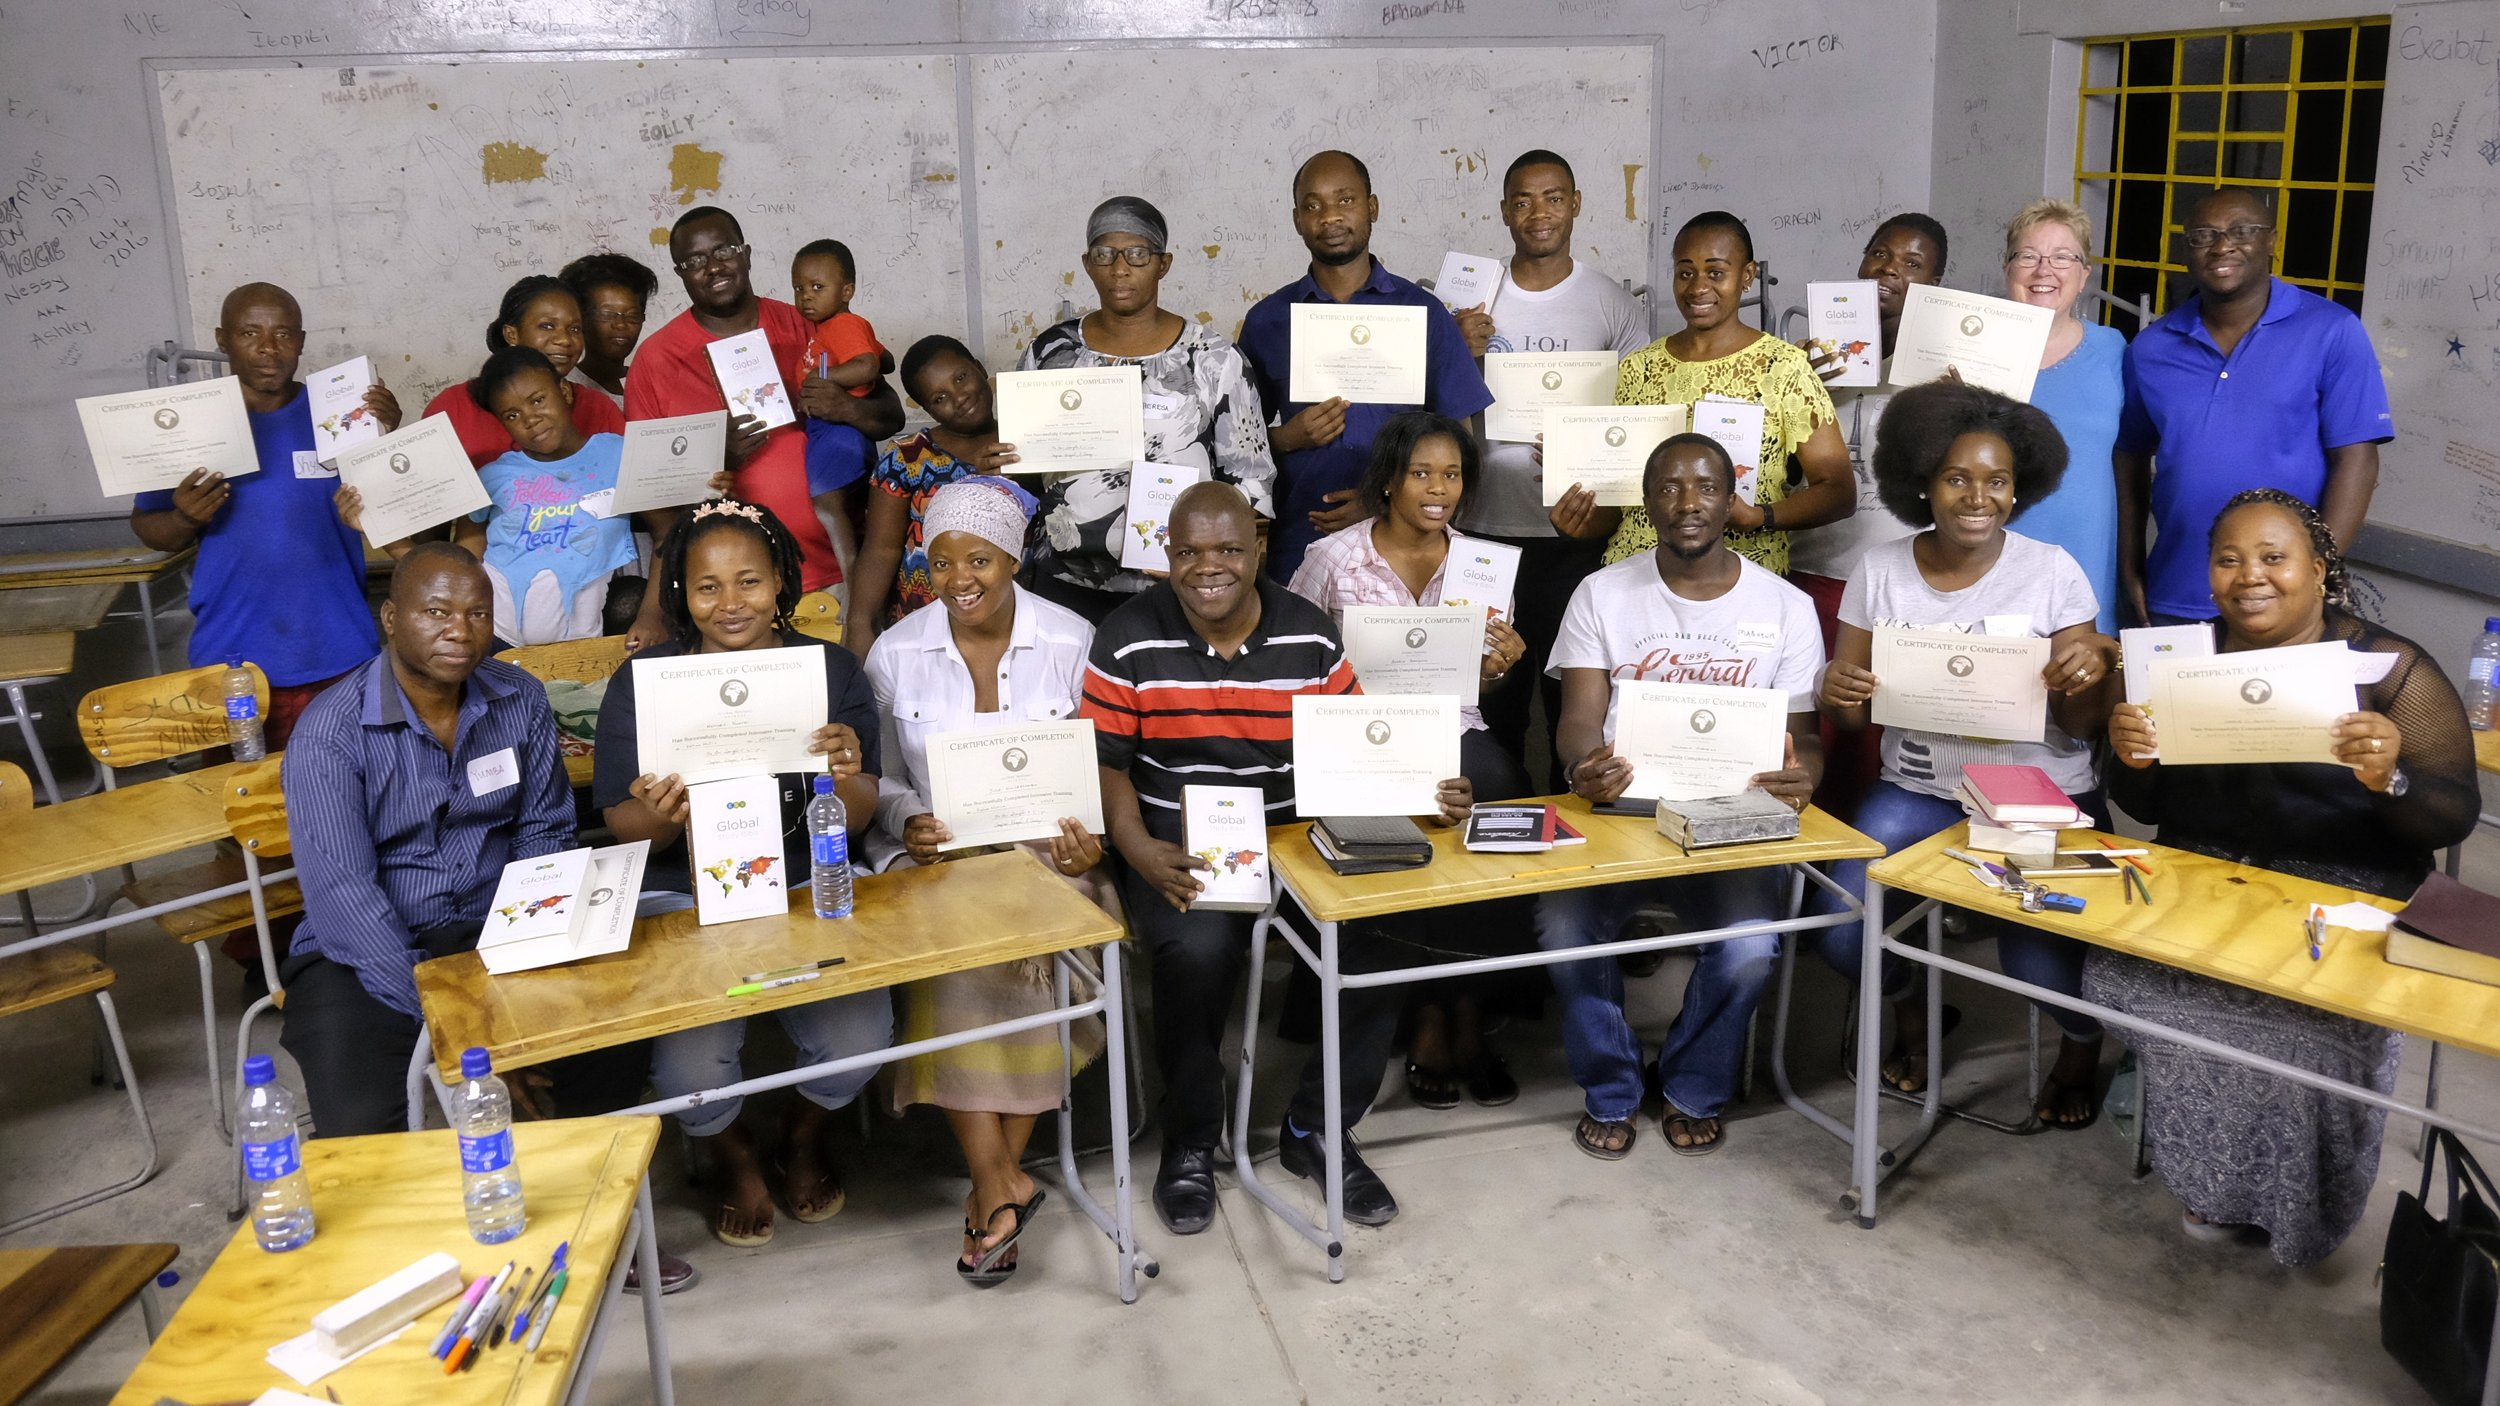 Our Namibian students proudly display their Certificates after completing Phase 1 Intensive Training.